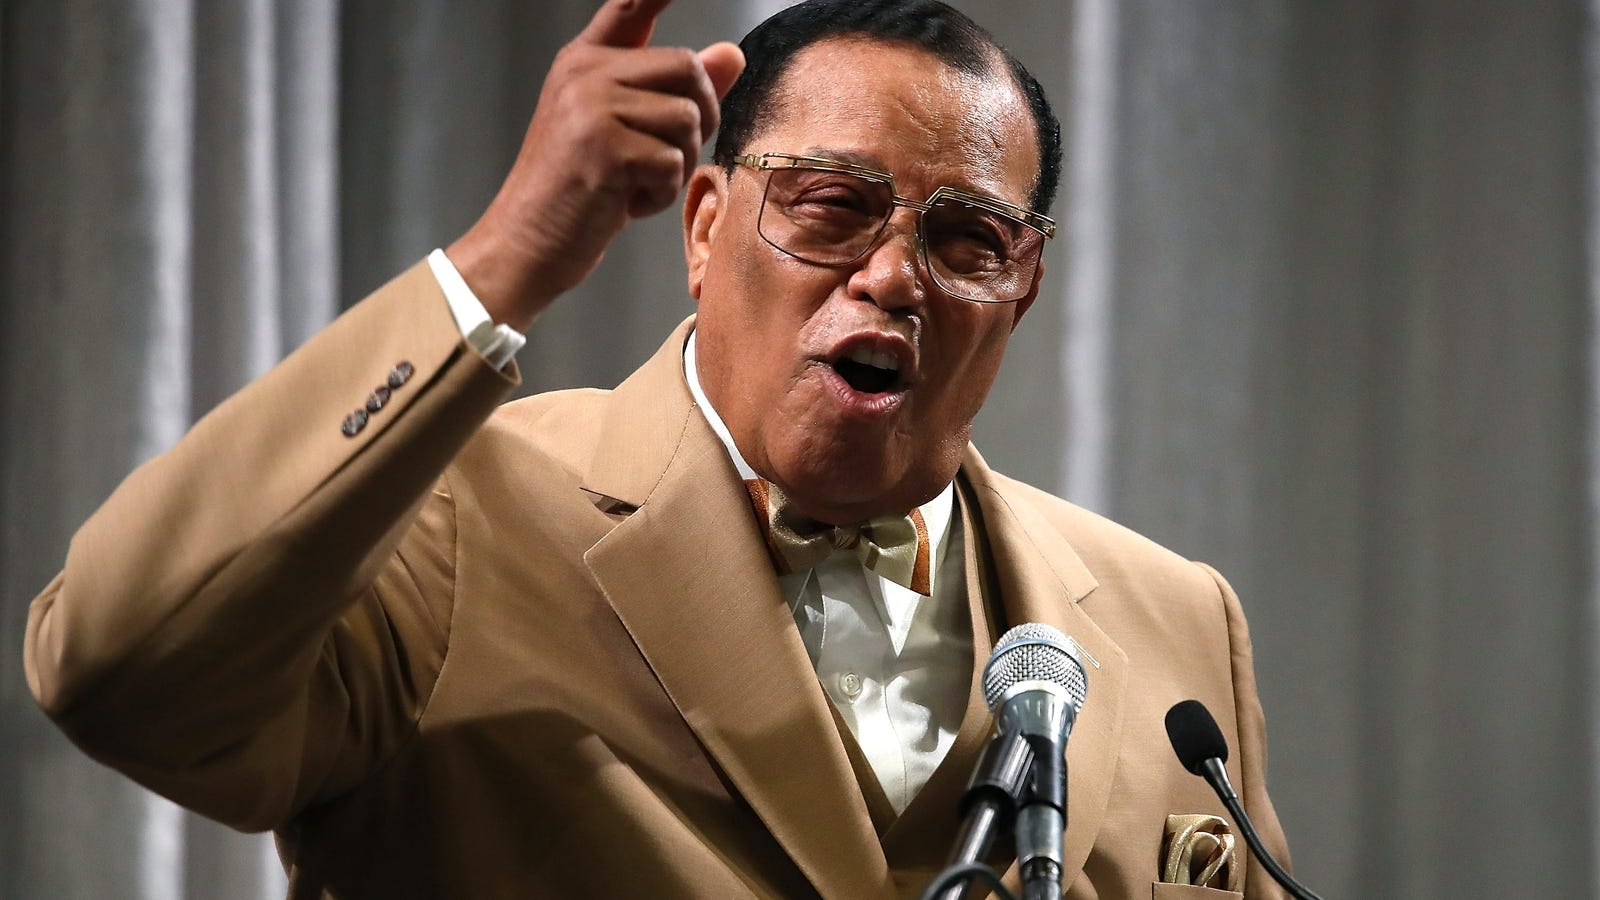 Mainstream Media Revive Condemnation of Farrakhan